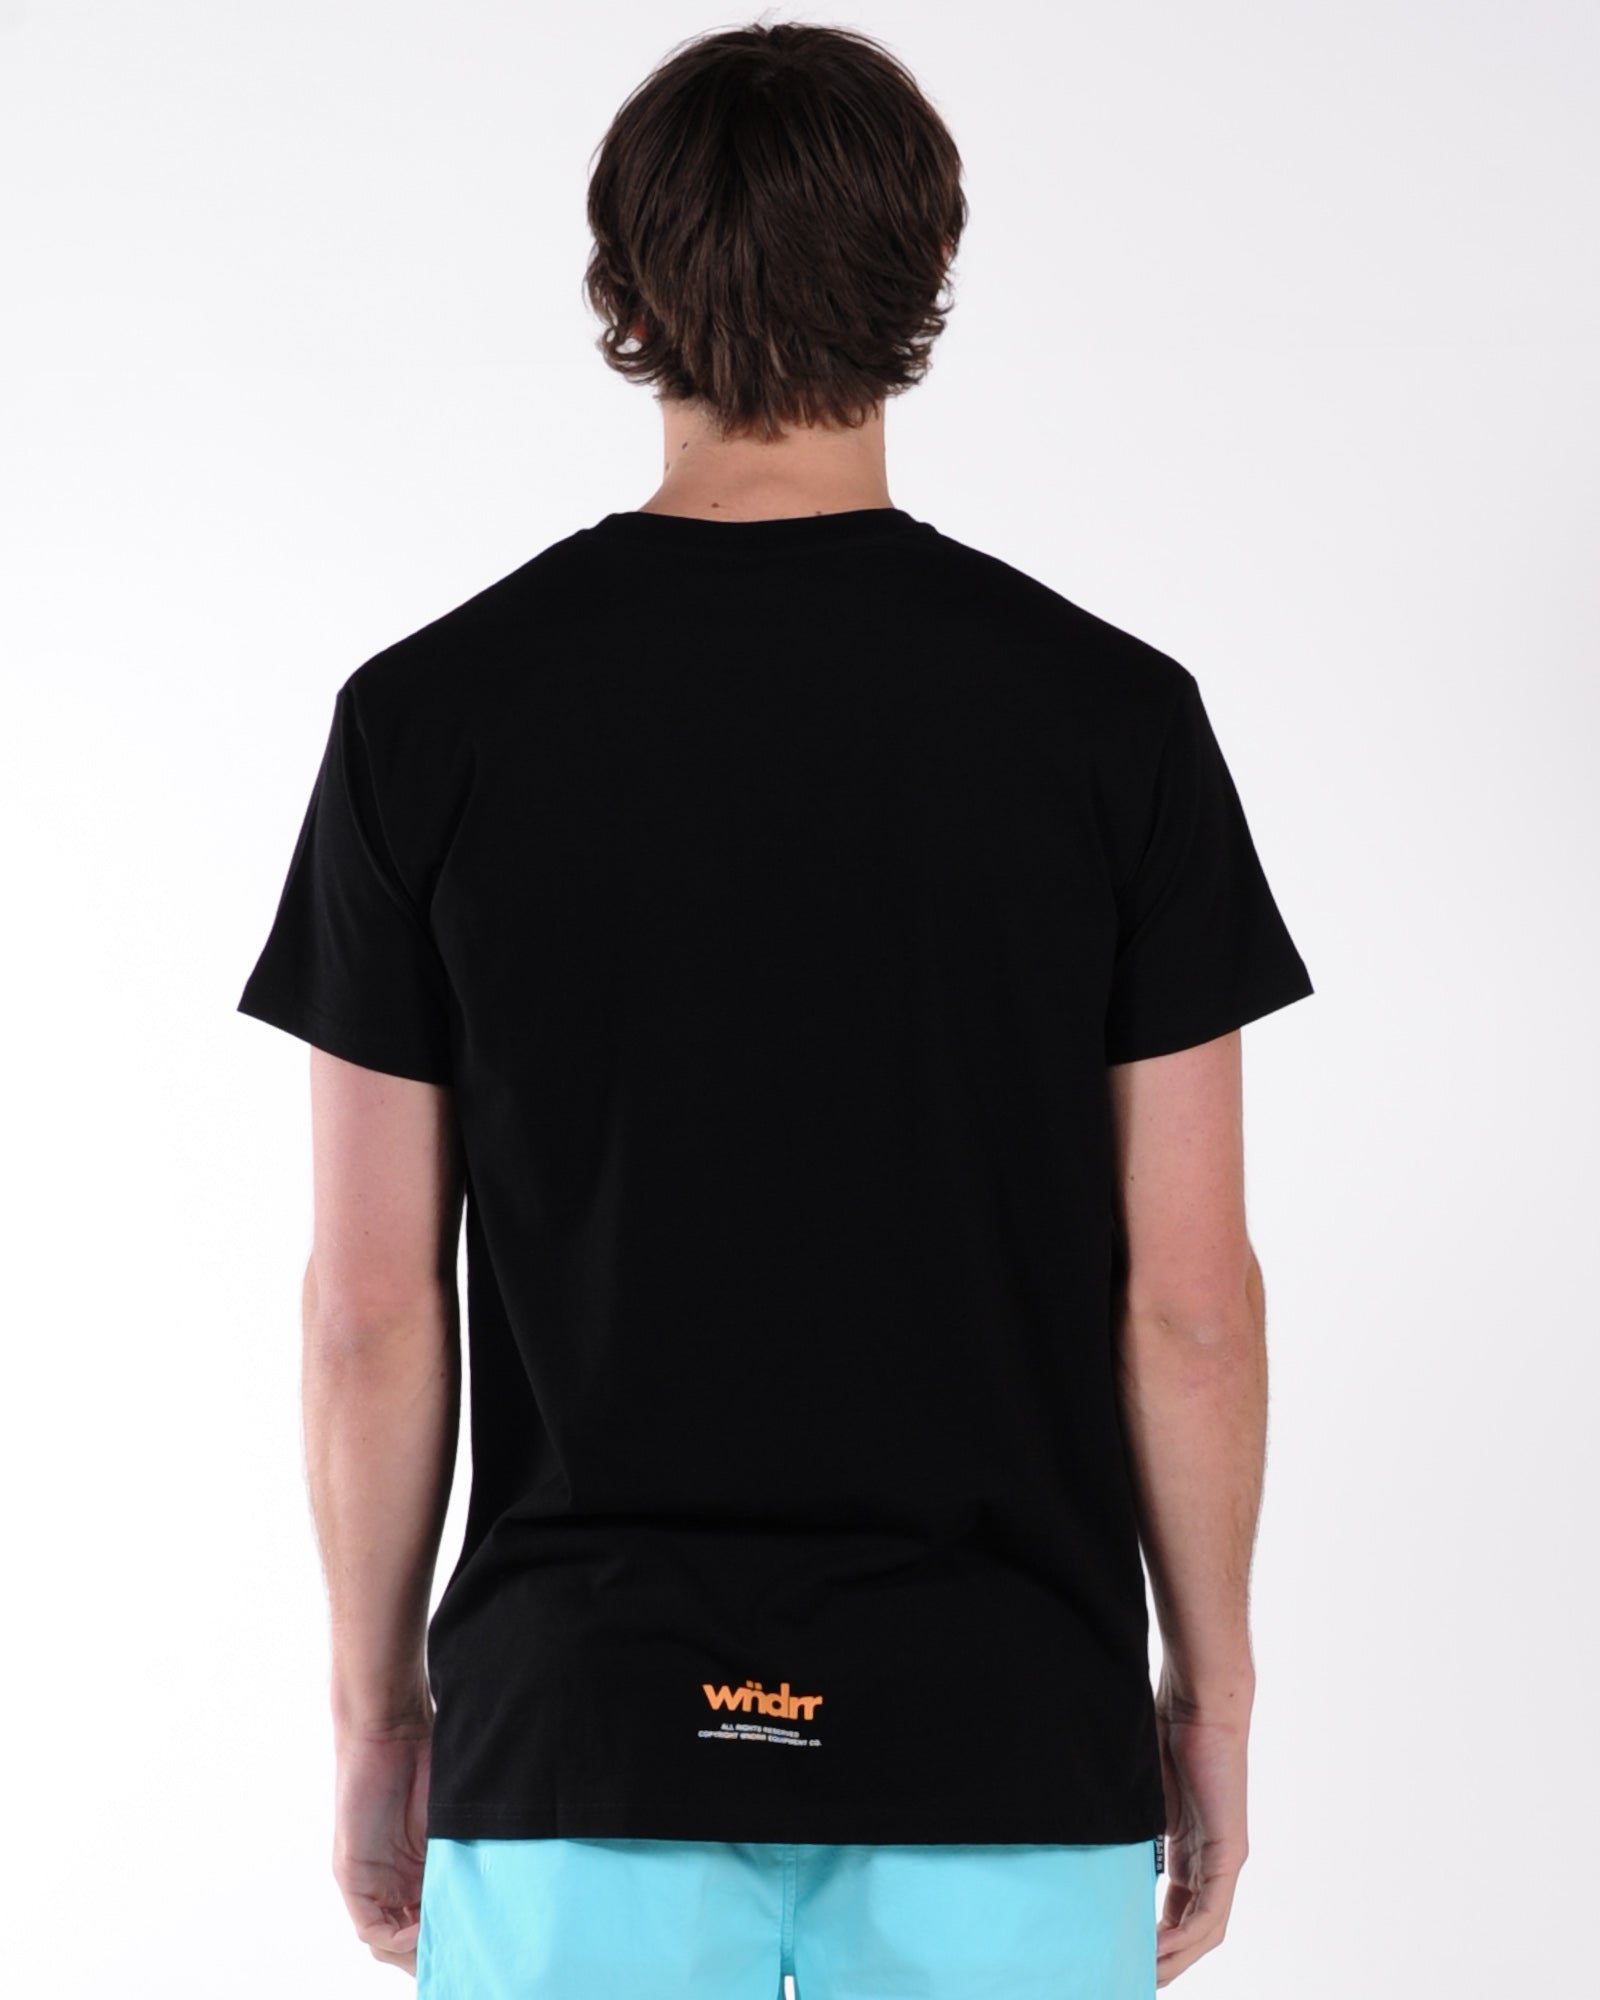 Wndrr Vhs Custom Fit Tee - Black